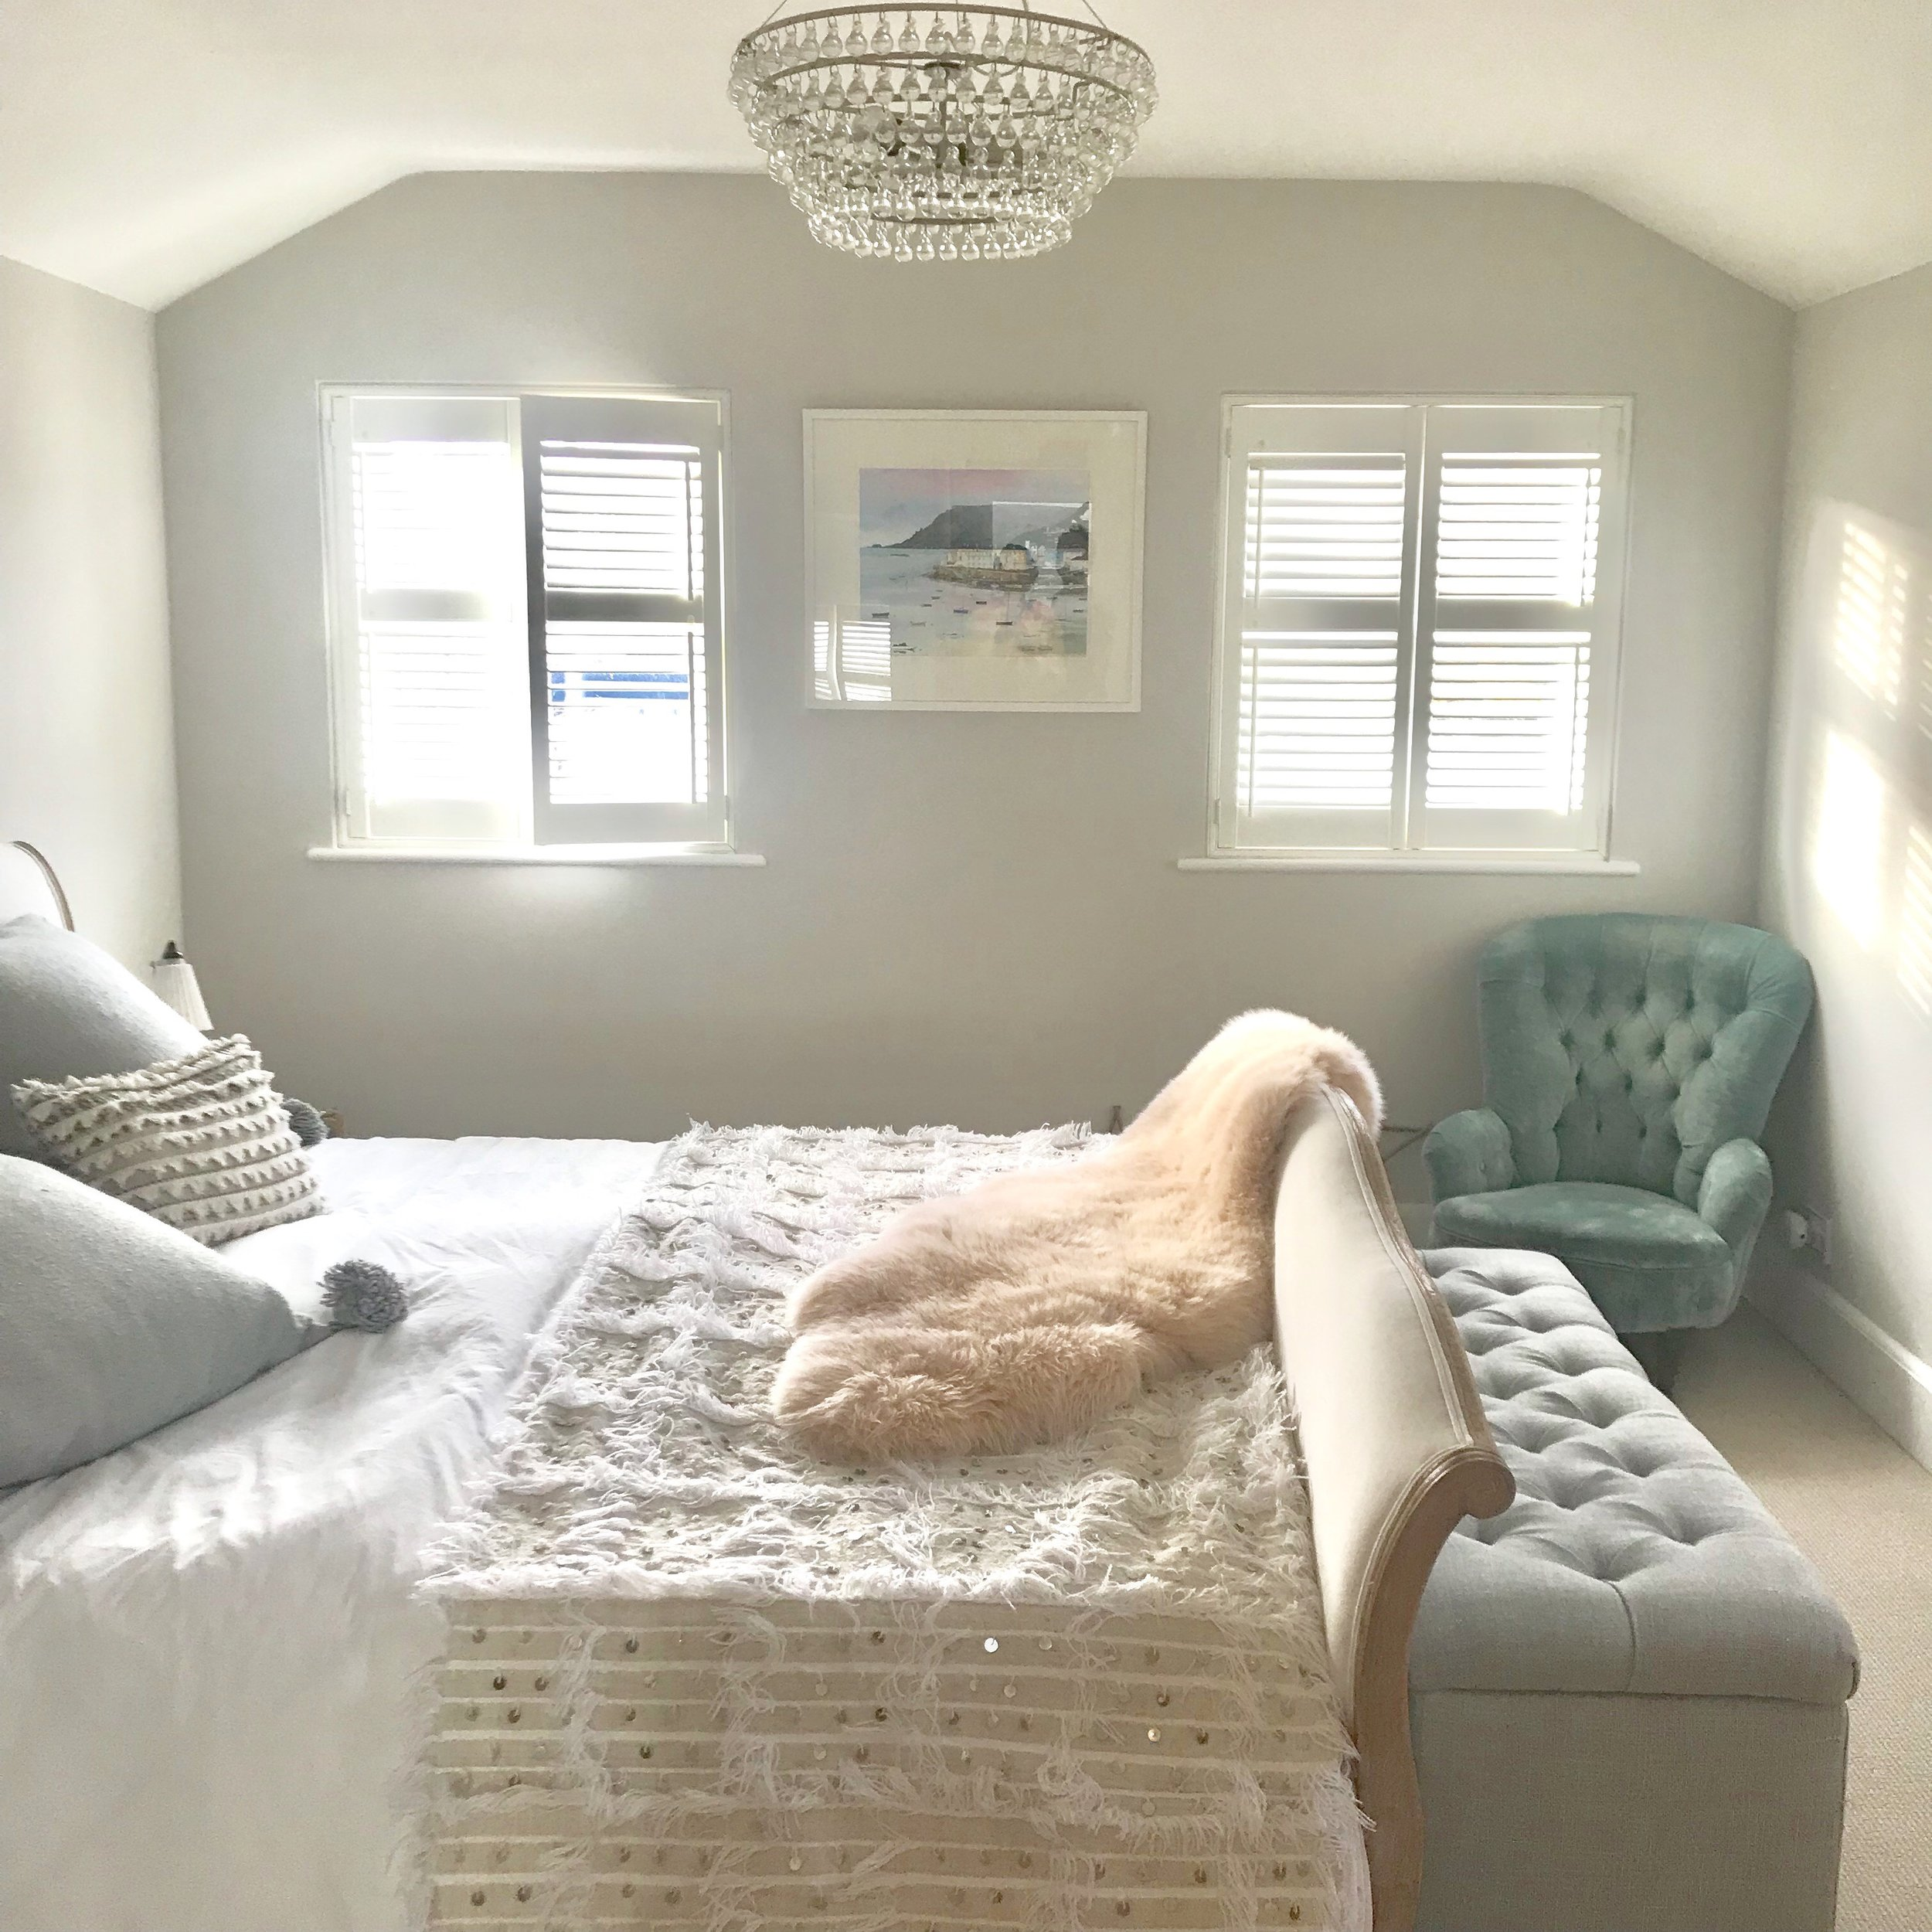 Sheepskin bedroom.jpg